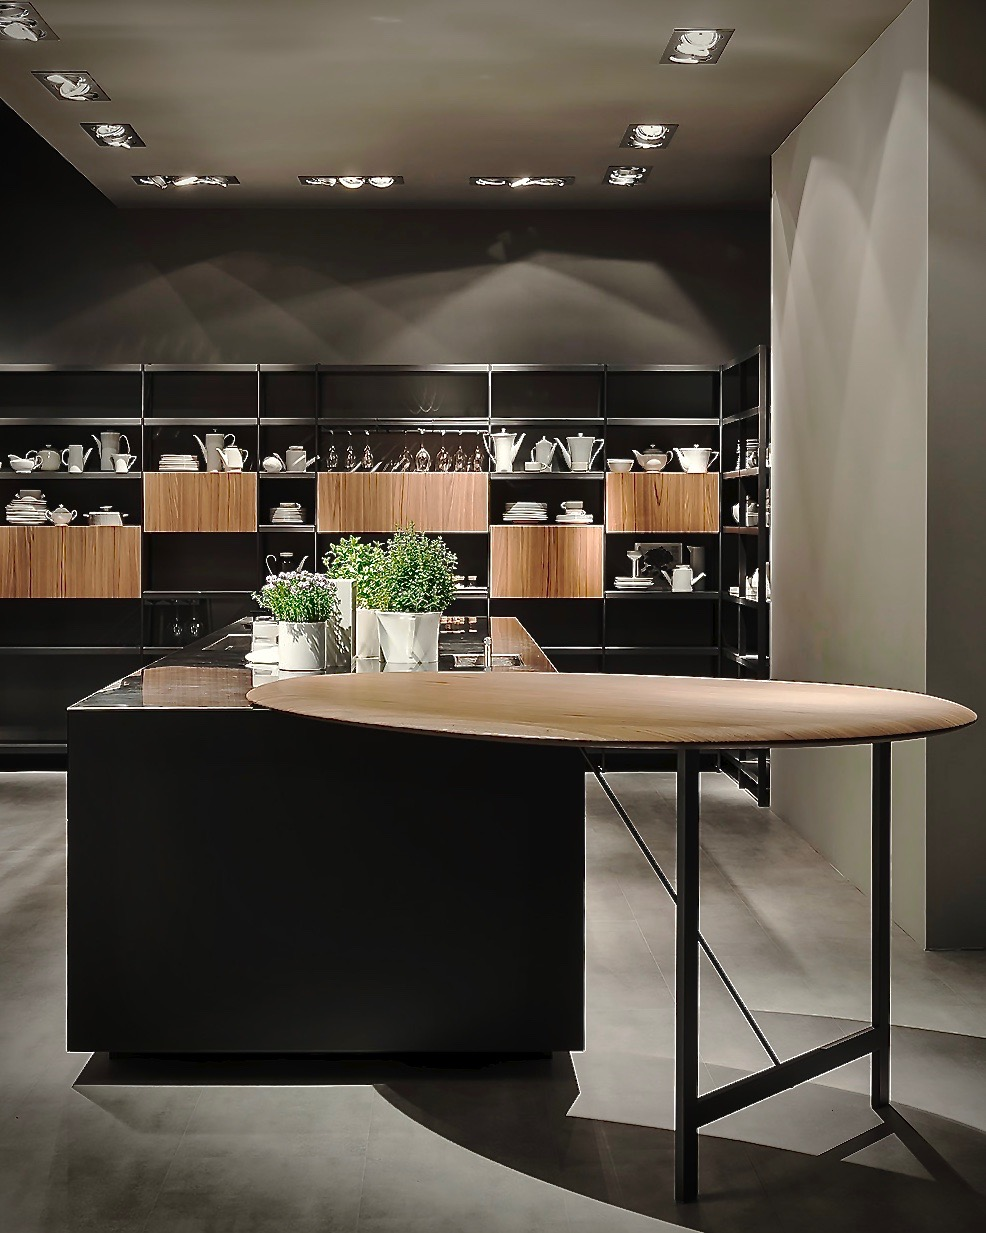 The 5 Key Trends From Eurocucina 2018